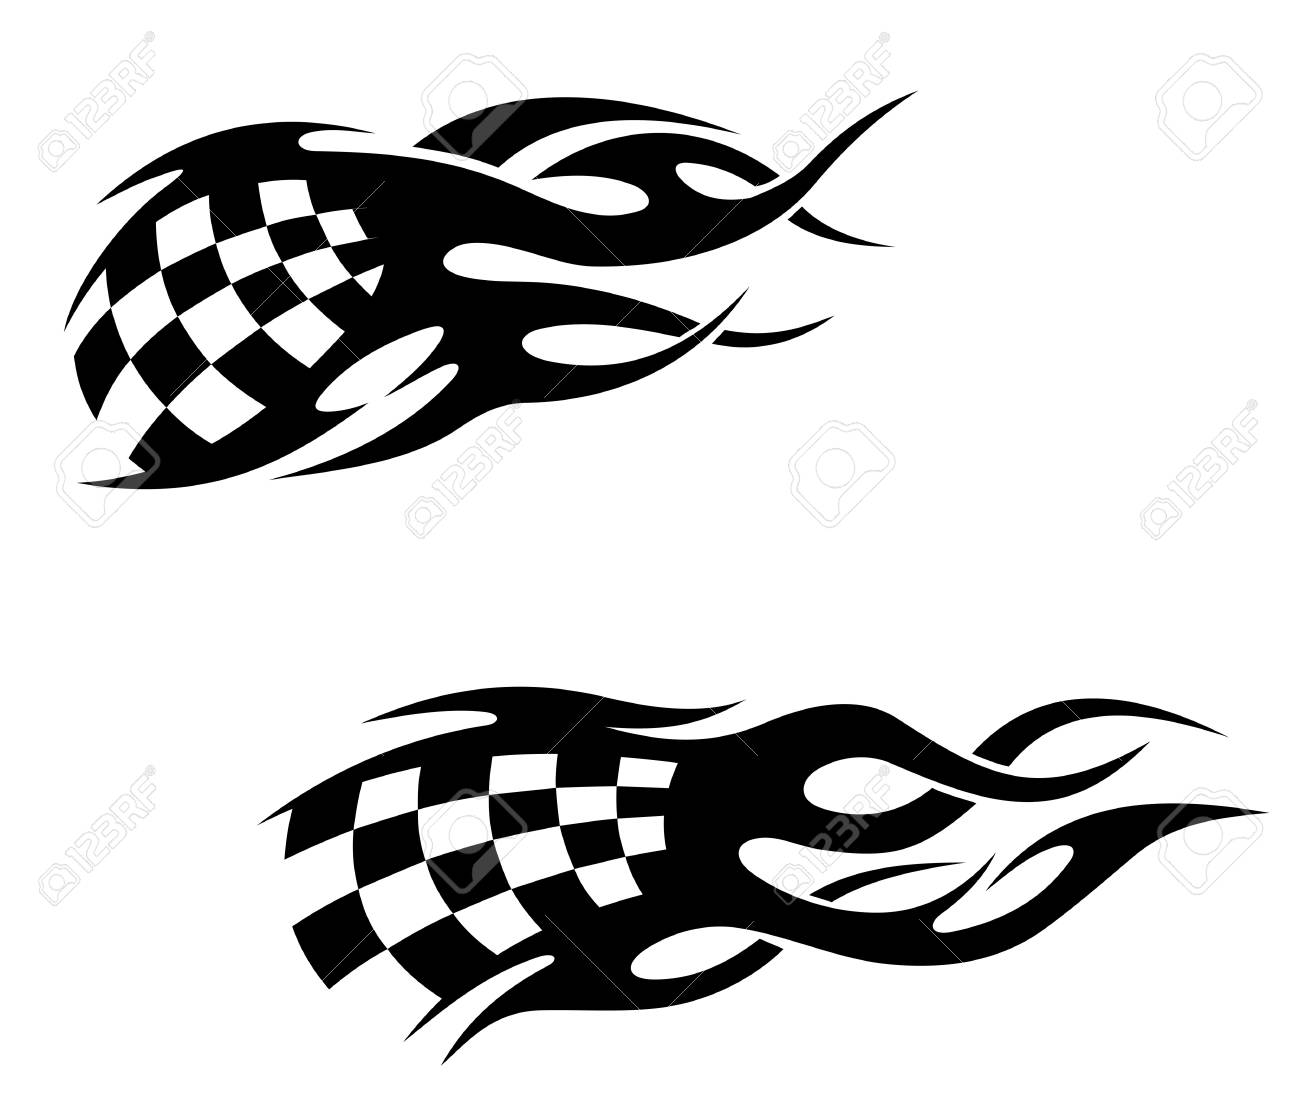 Tattoos with checkuered flag in tribal style Stock Vector - 14759988